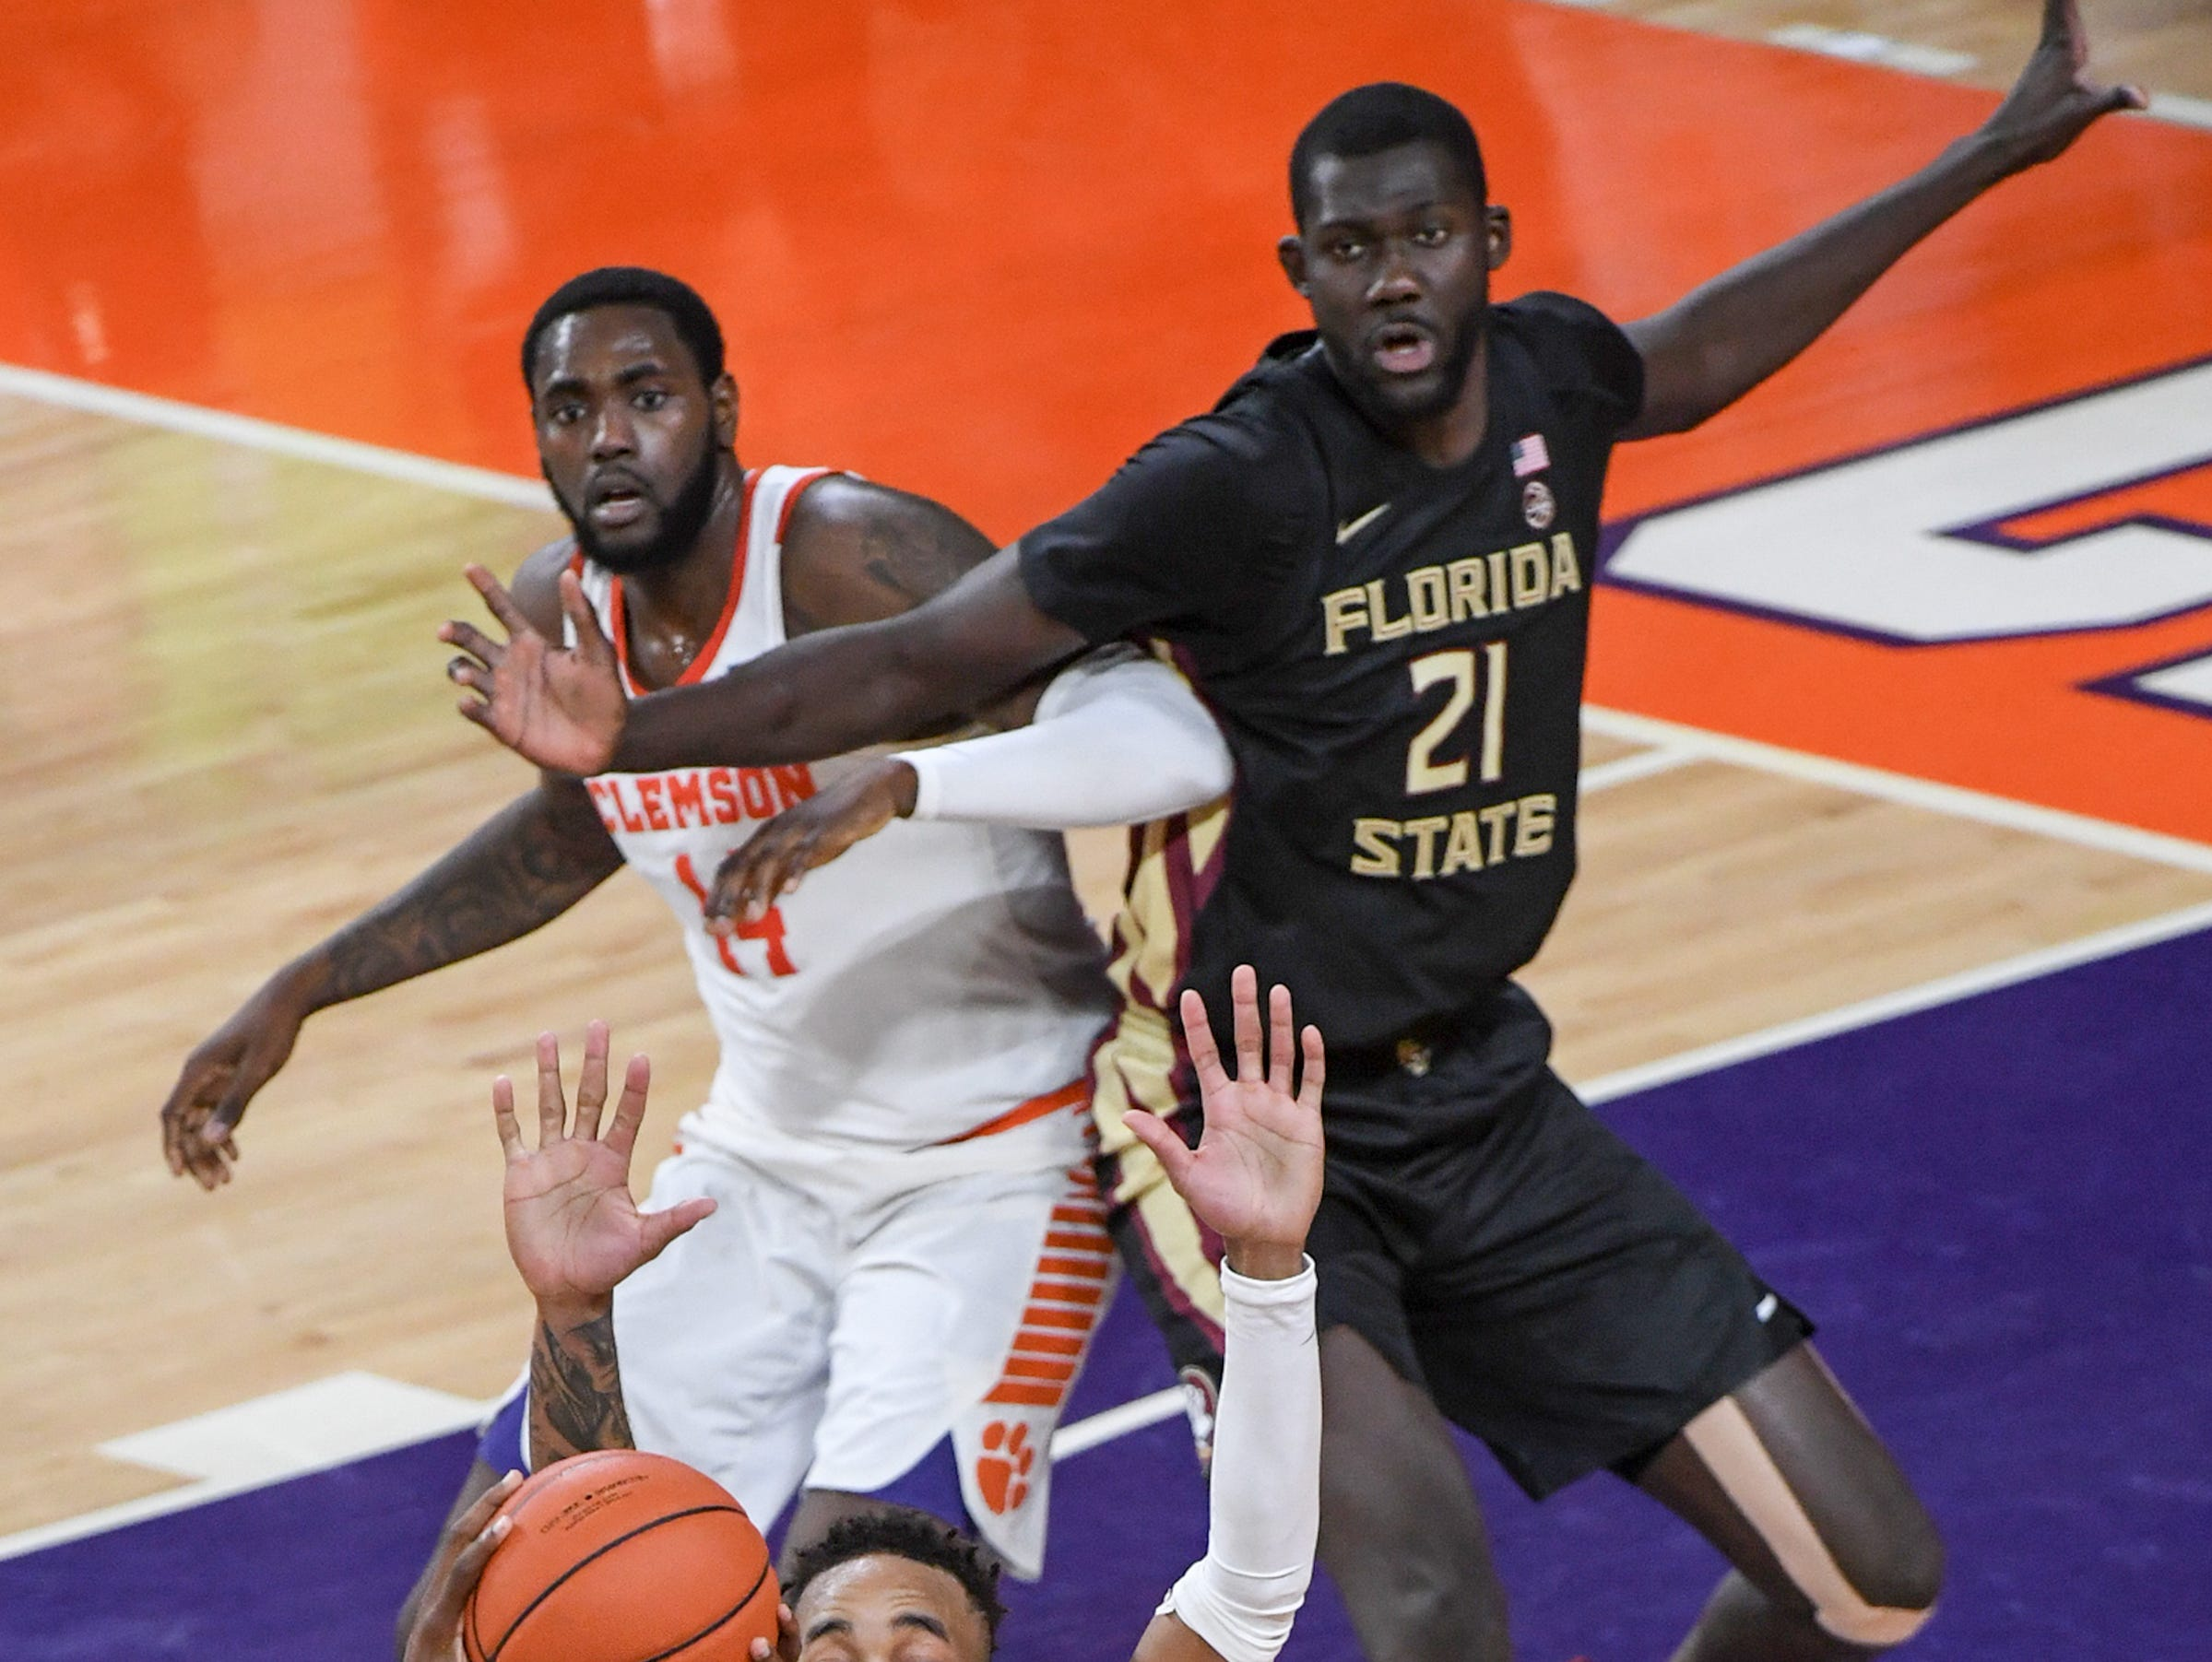 Clemson guard Marcquise Reed (2) defends Florida State guard Terence Mann(14) looking to pass to Florida State center Christ Koumadje(21) checked by Clemson forward Elijah Thomas (14) during the first half at Littlejohn Coliseum in Clemson Tuesday, February 19, 2019.